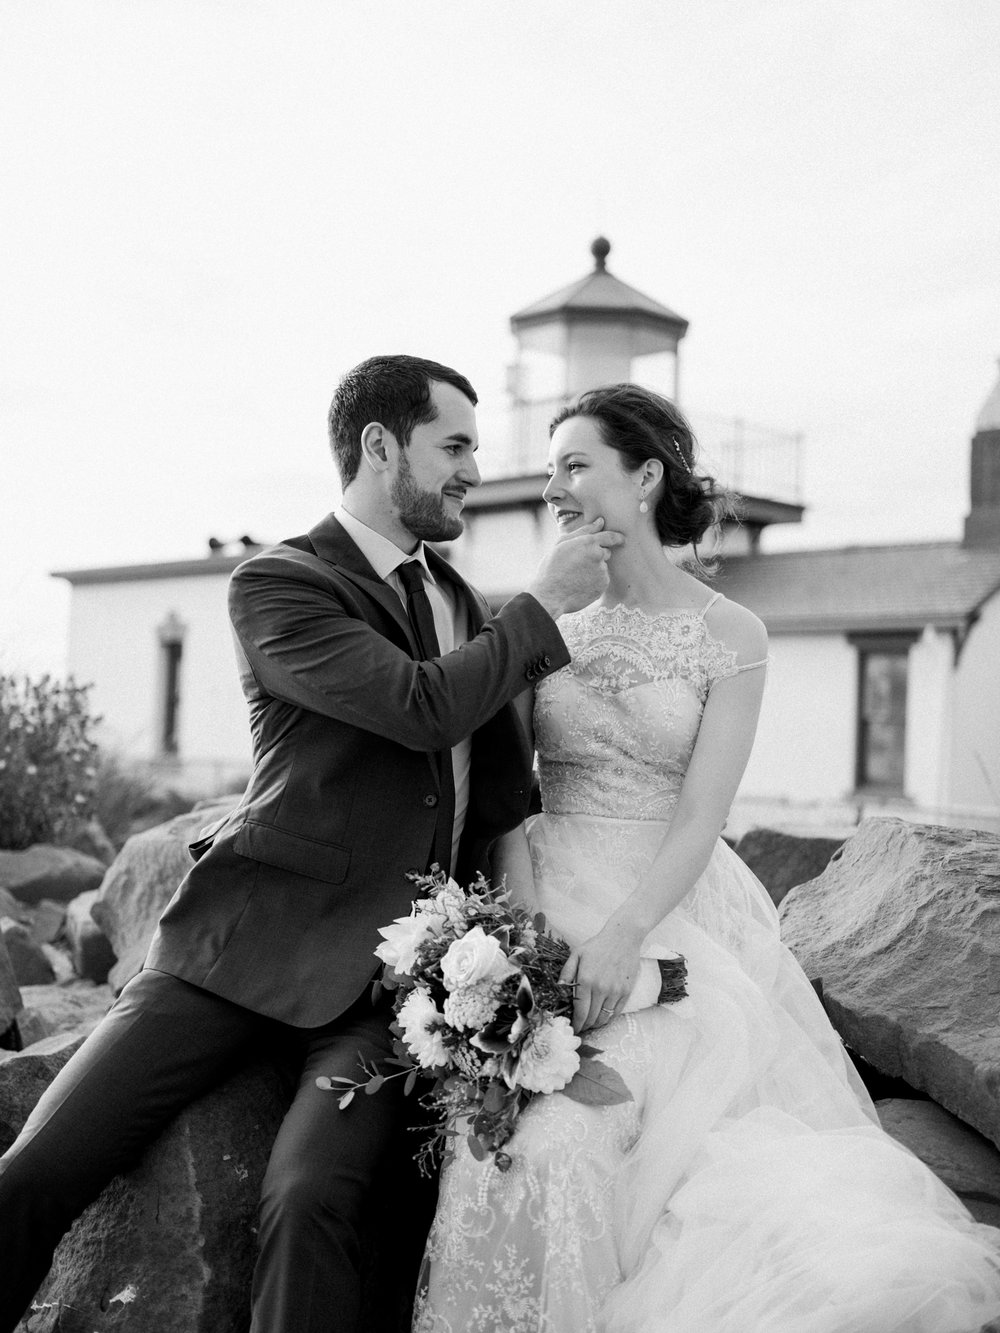 Stolen Glimpses Seattle Wedding Photographer at Discovery Park60.jpg